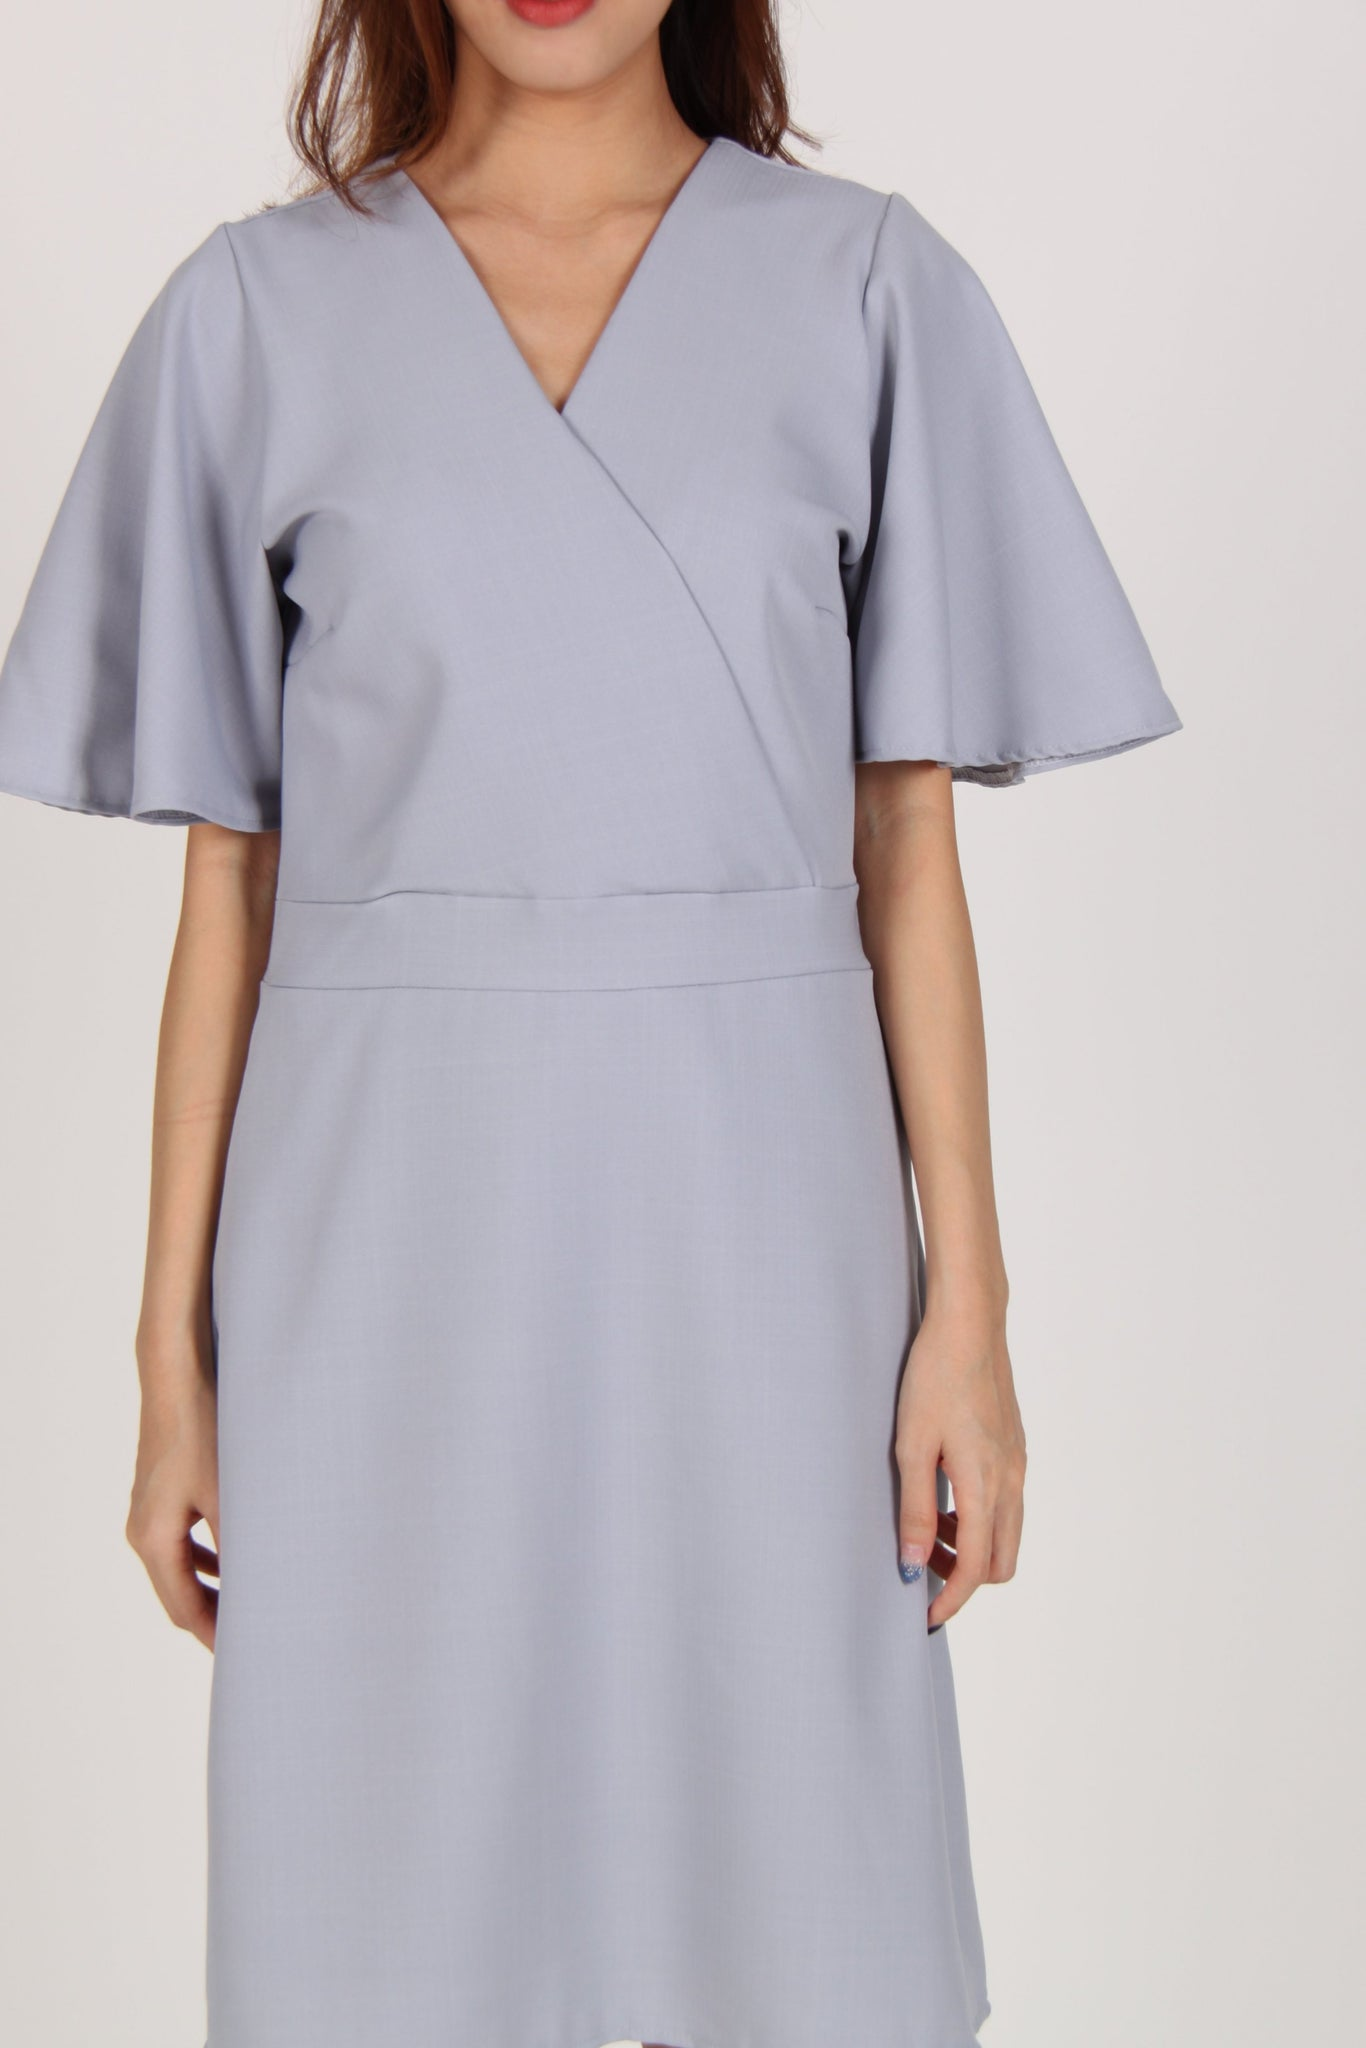 Bell Sleeves Wrap Front Dress in Light Blue